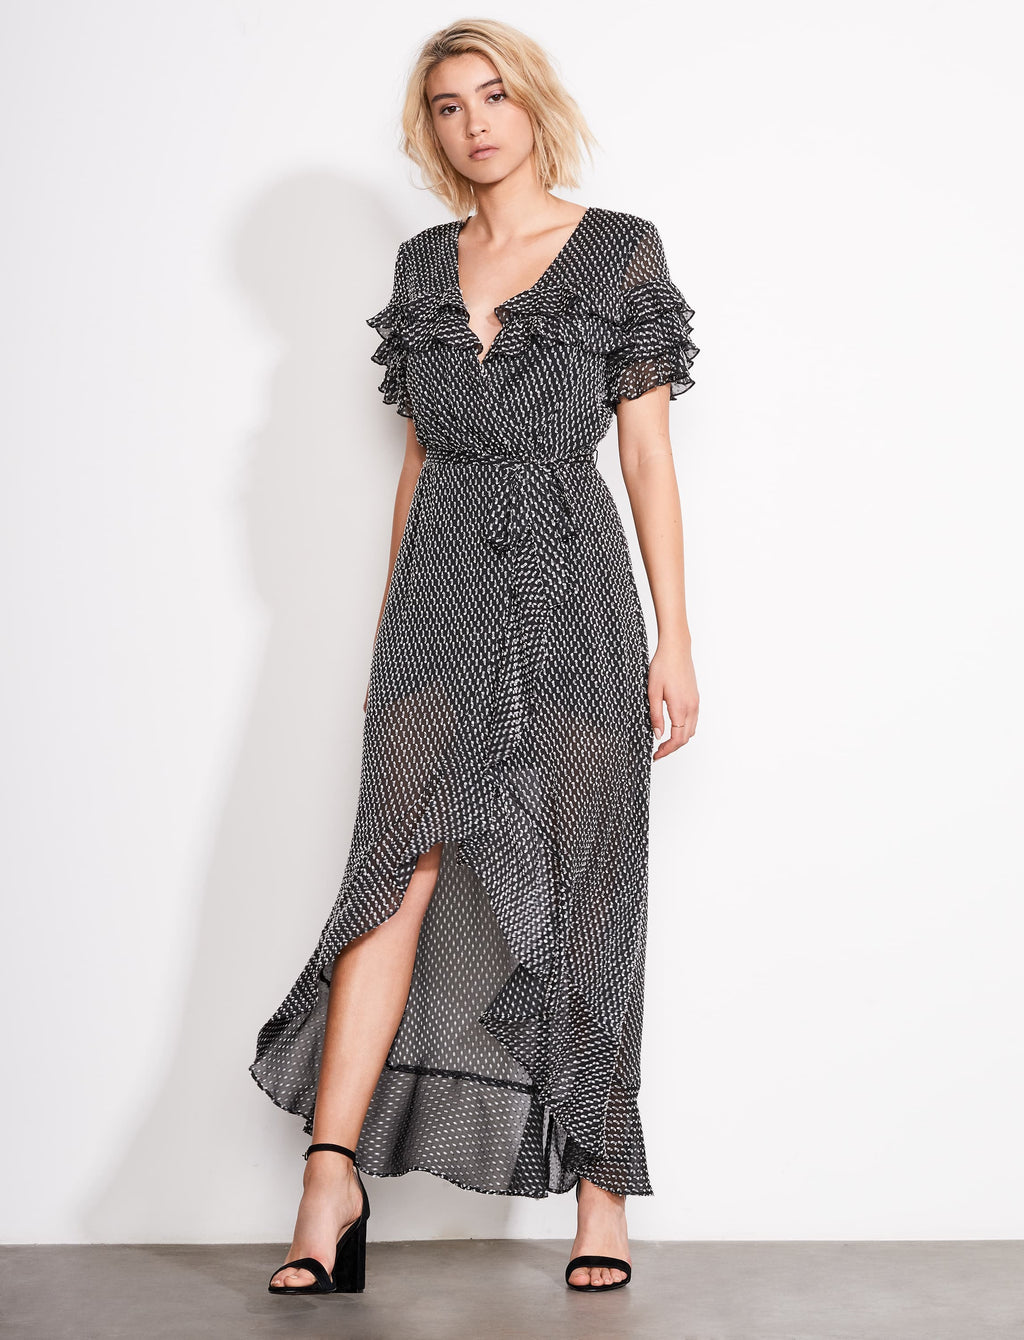 YOLO Wrap Dress